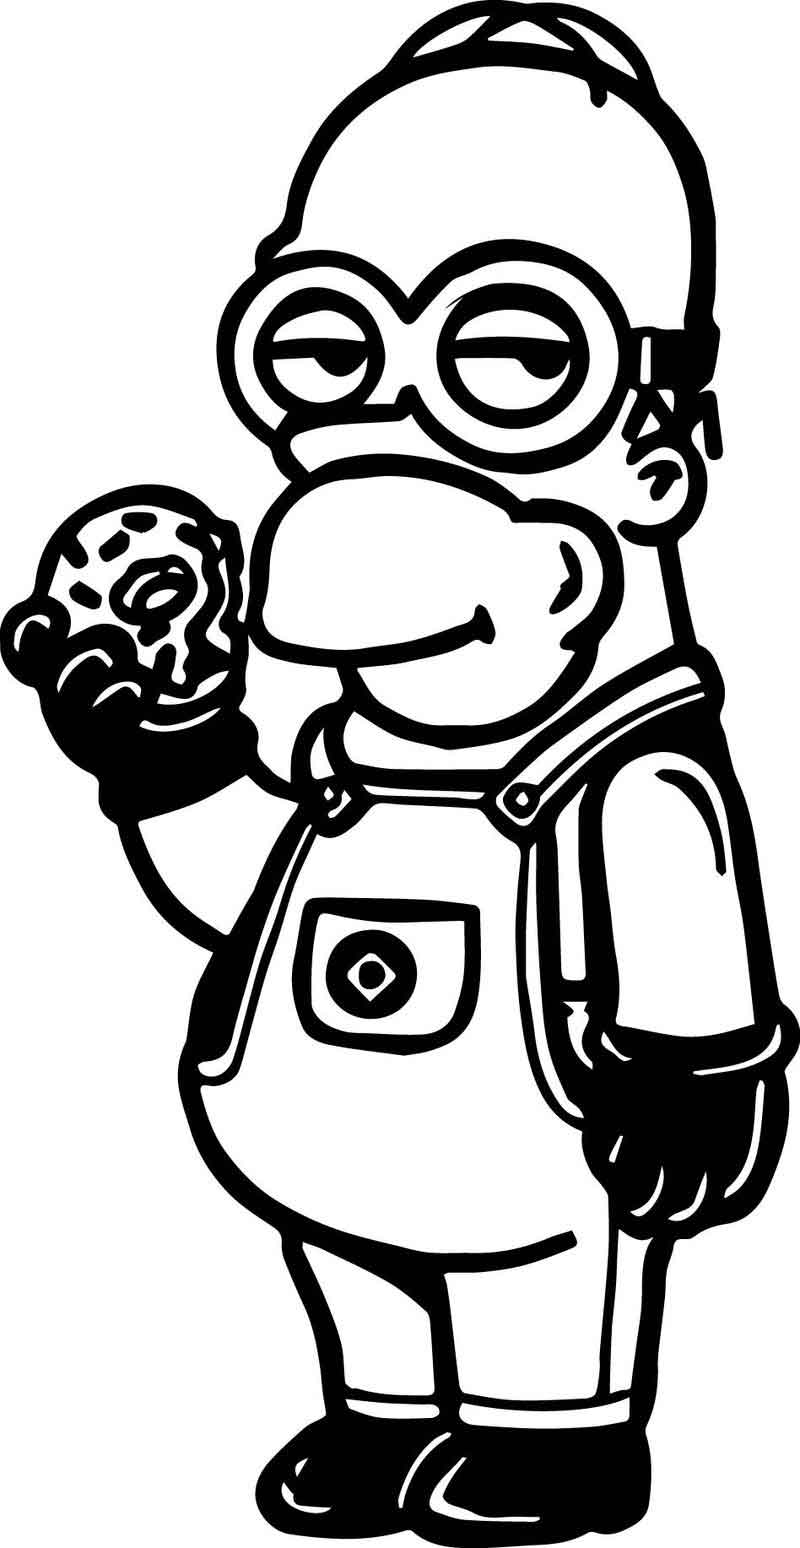 bob the minion coloring pages kevin the minion drawing free download on clipartmag bob coloring minion the pages